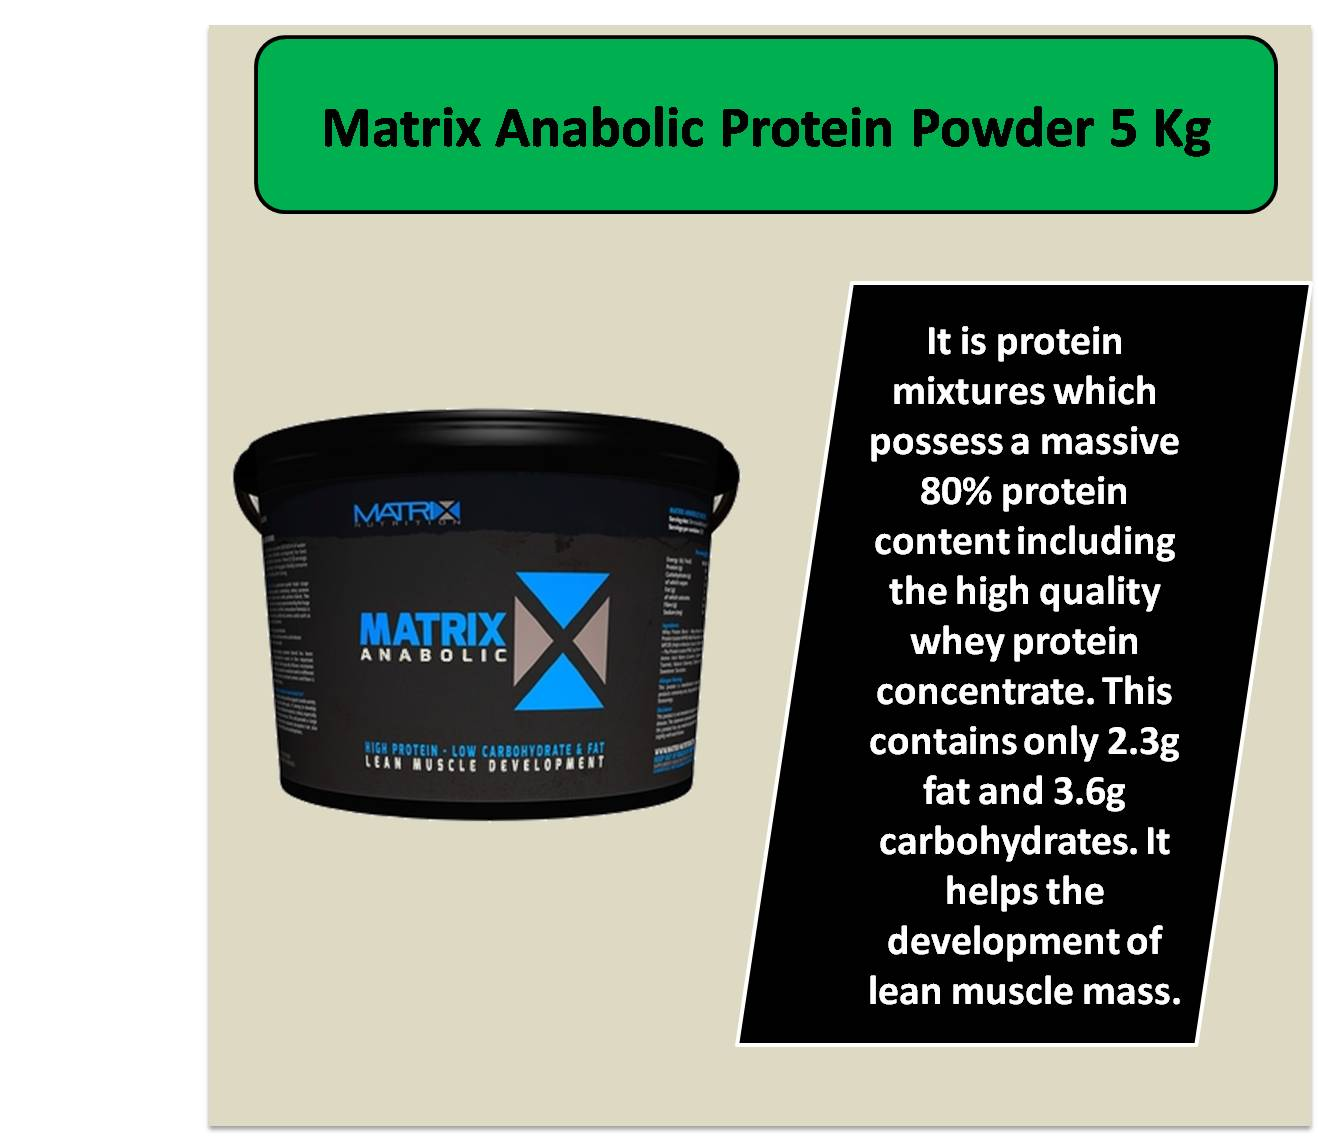 Matrix Anabolic Protein Powder 5 Kg